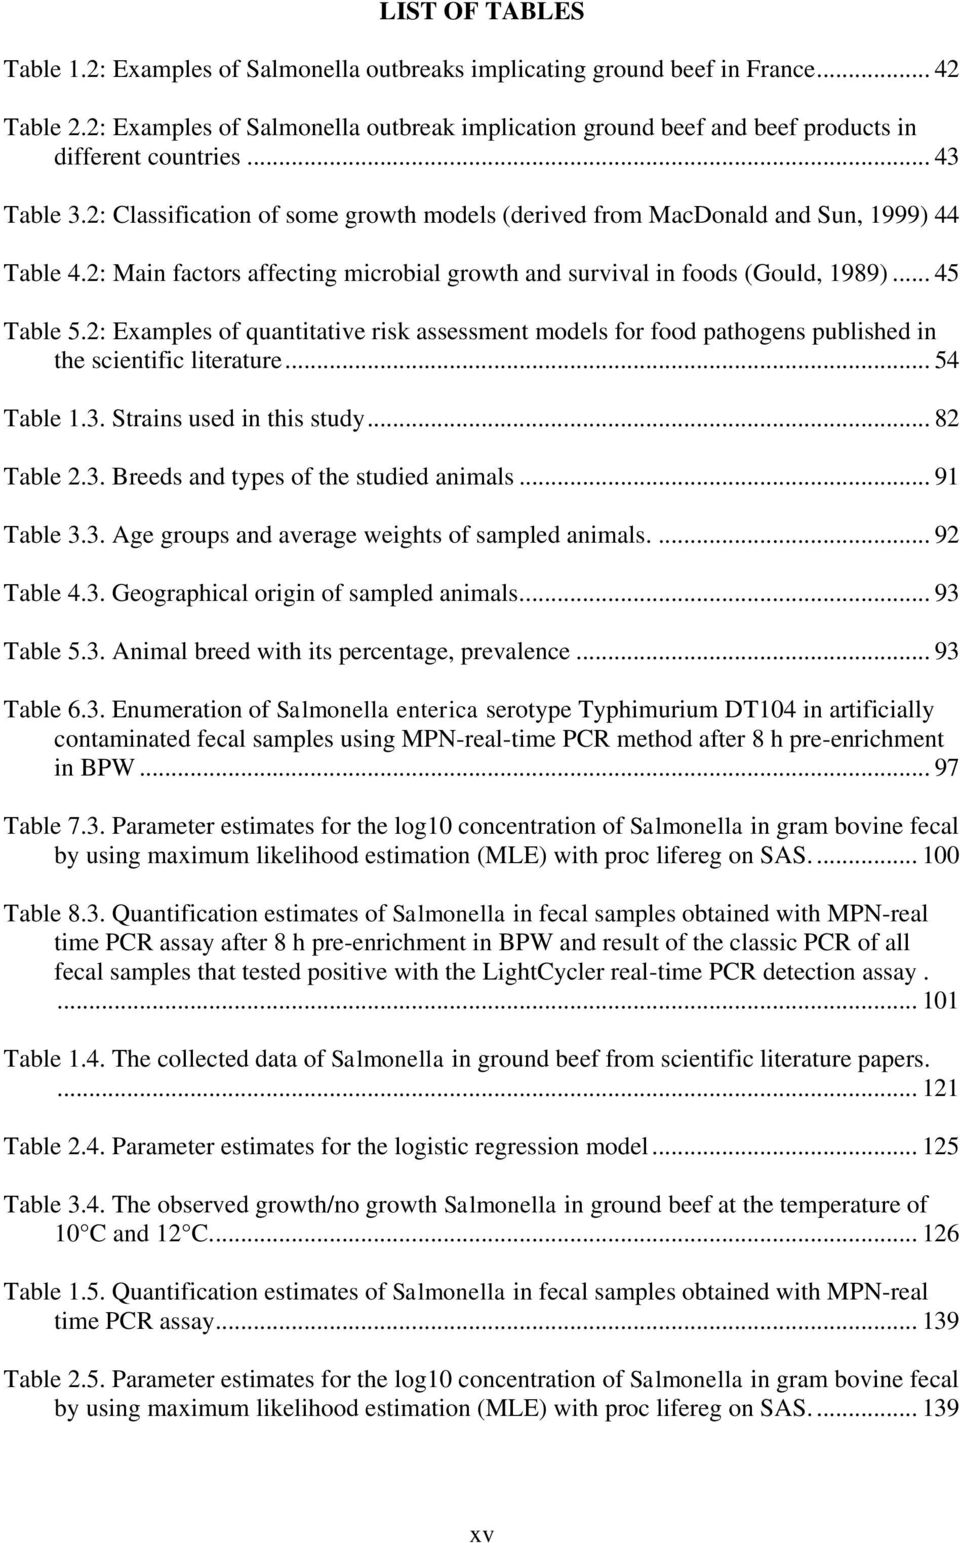 2: Classification of some growth models (derived from MacDonald and Sun, 1999) 44 Table 4.2: Main factors affecting microbial growth and survival in foods (Gould, 1989)... 45 Table 5.